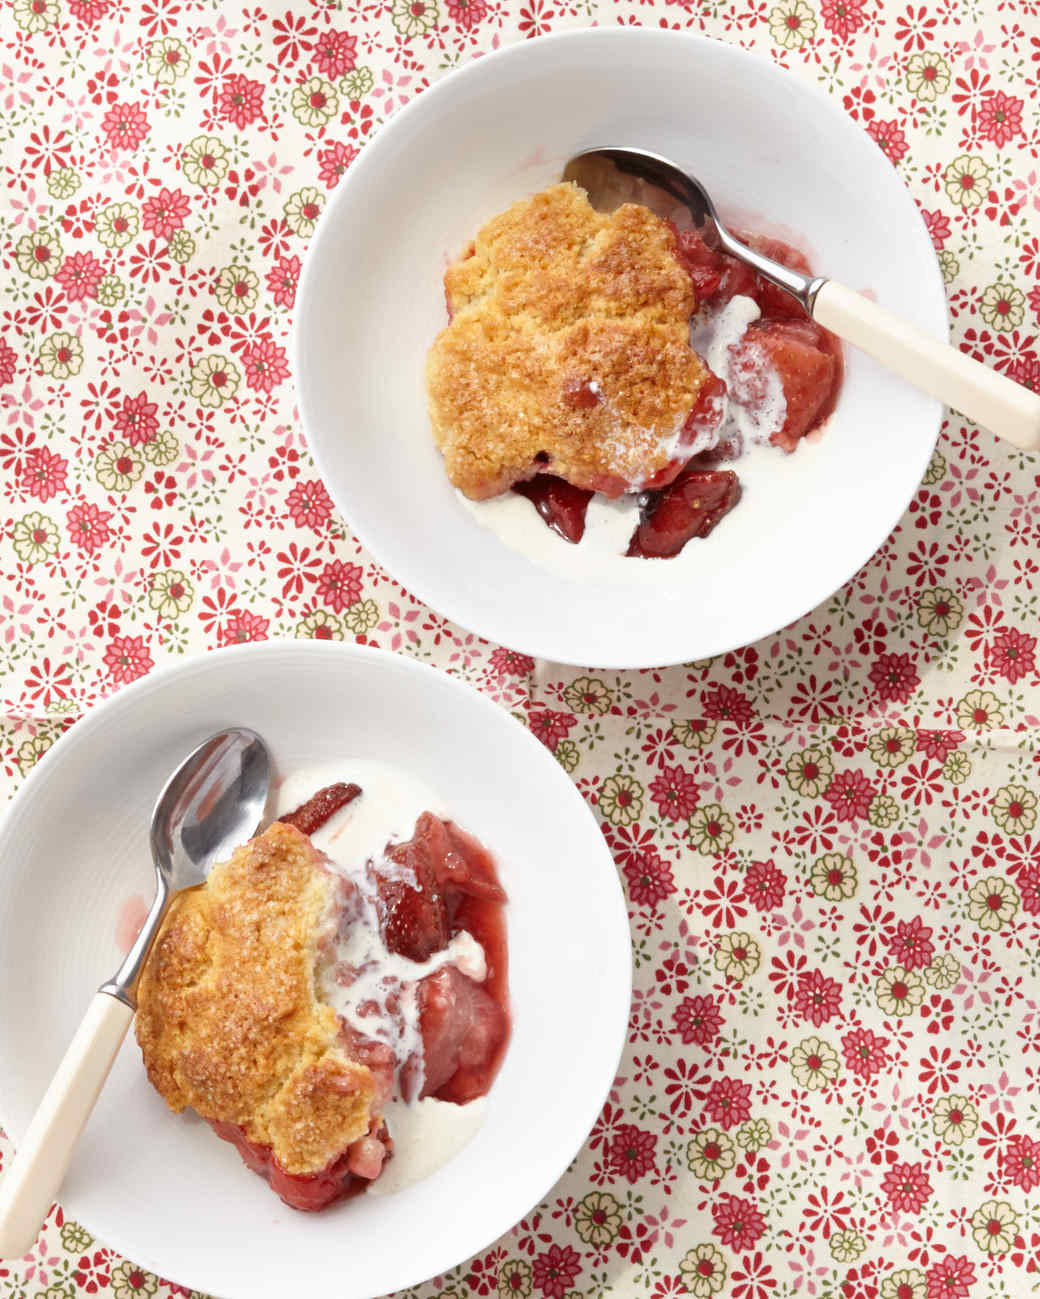 strawberry-cobbler-0067-d112152.jpg